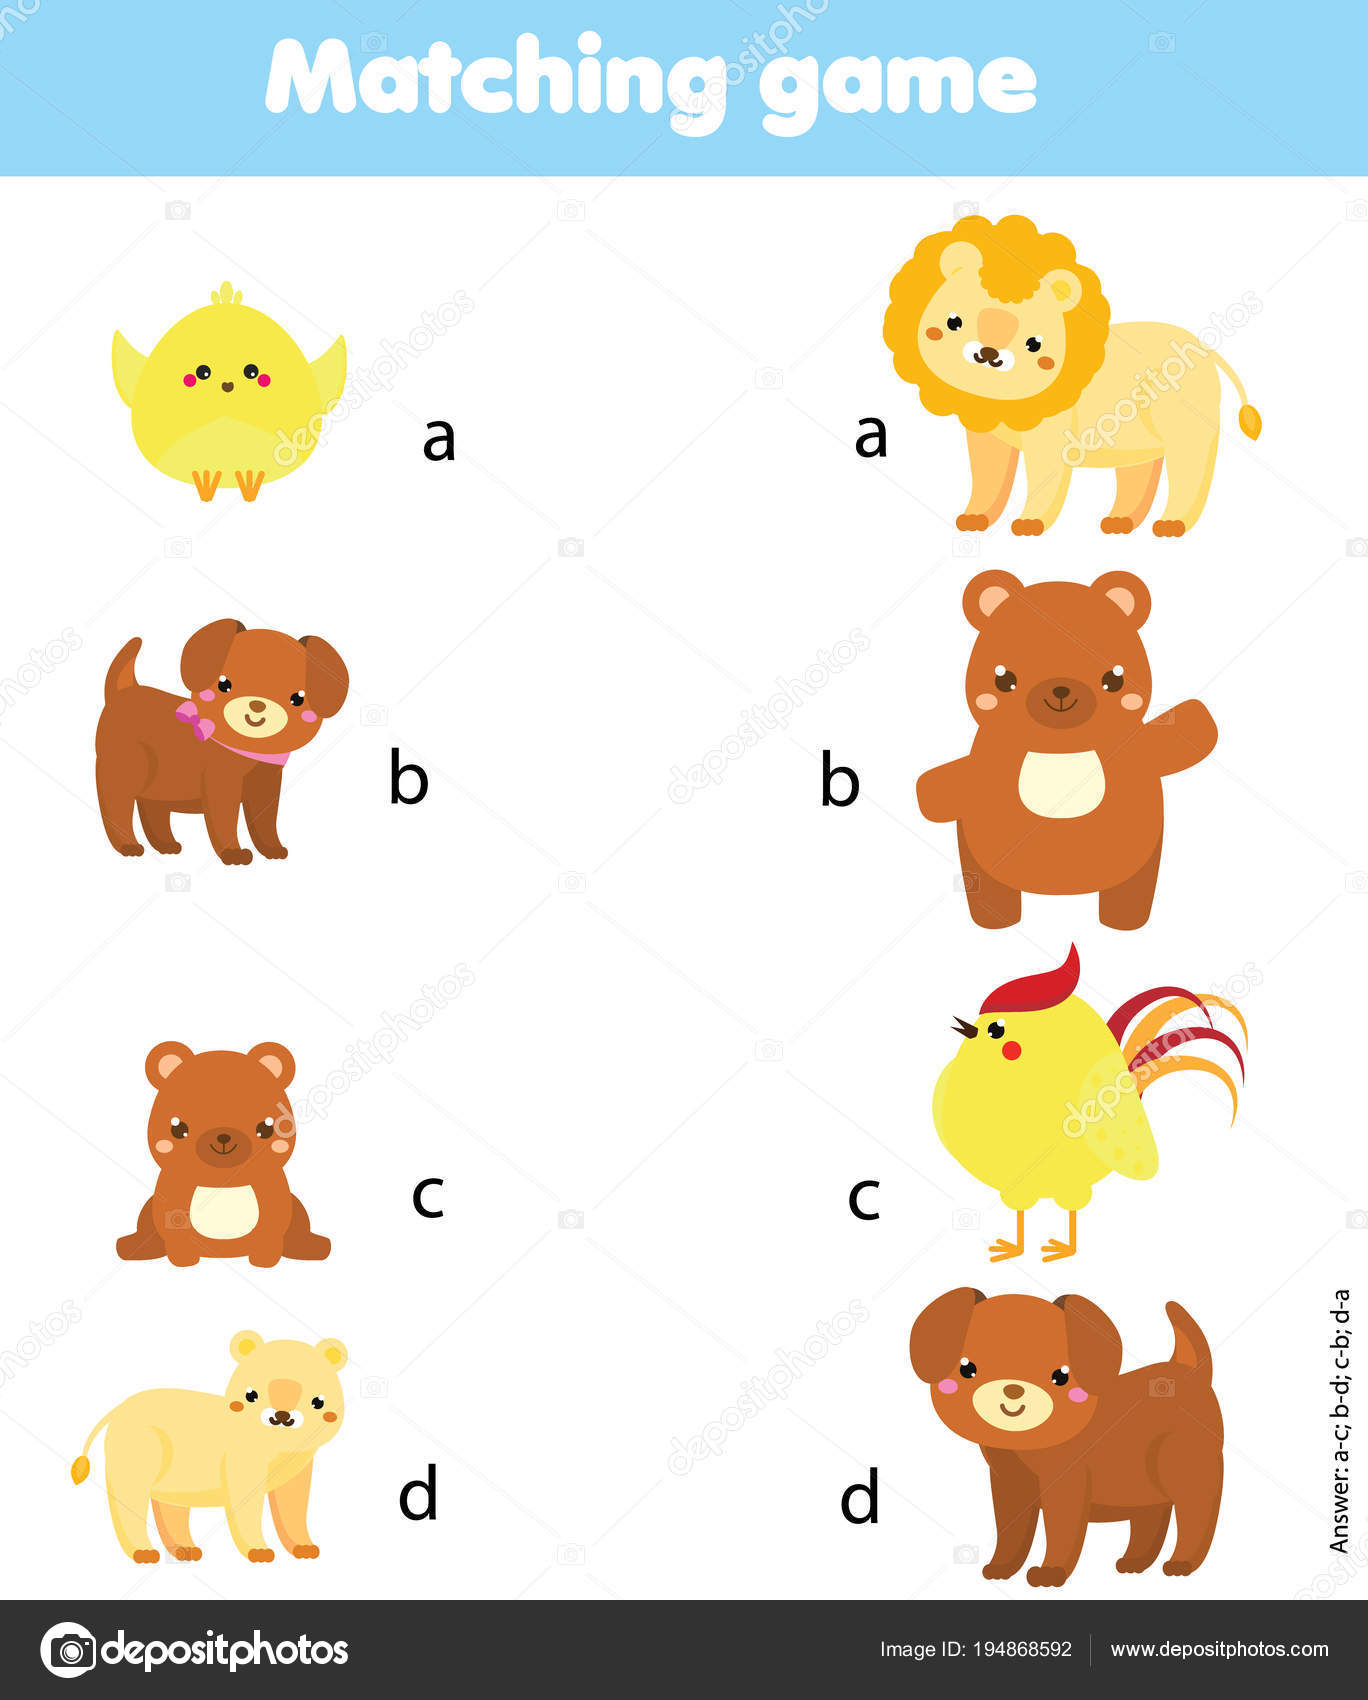 photo about Baby Animal Match Game Printable identify Animal infants matching recreation Matching activity. Game animal